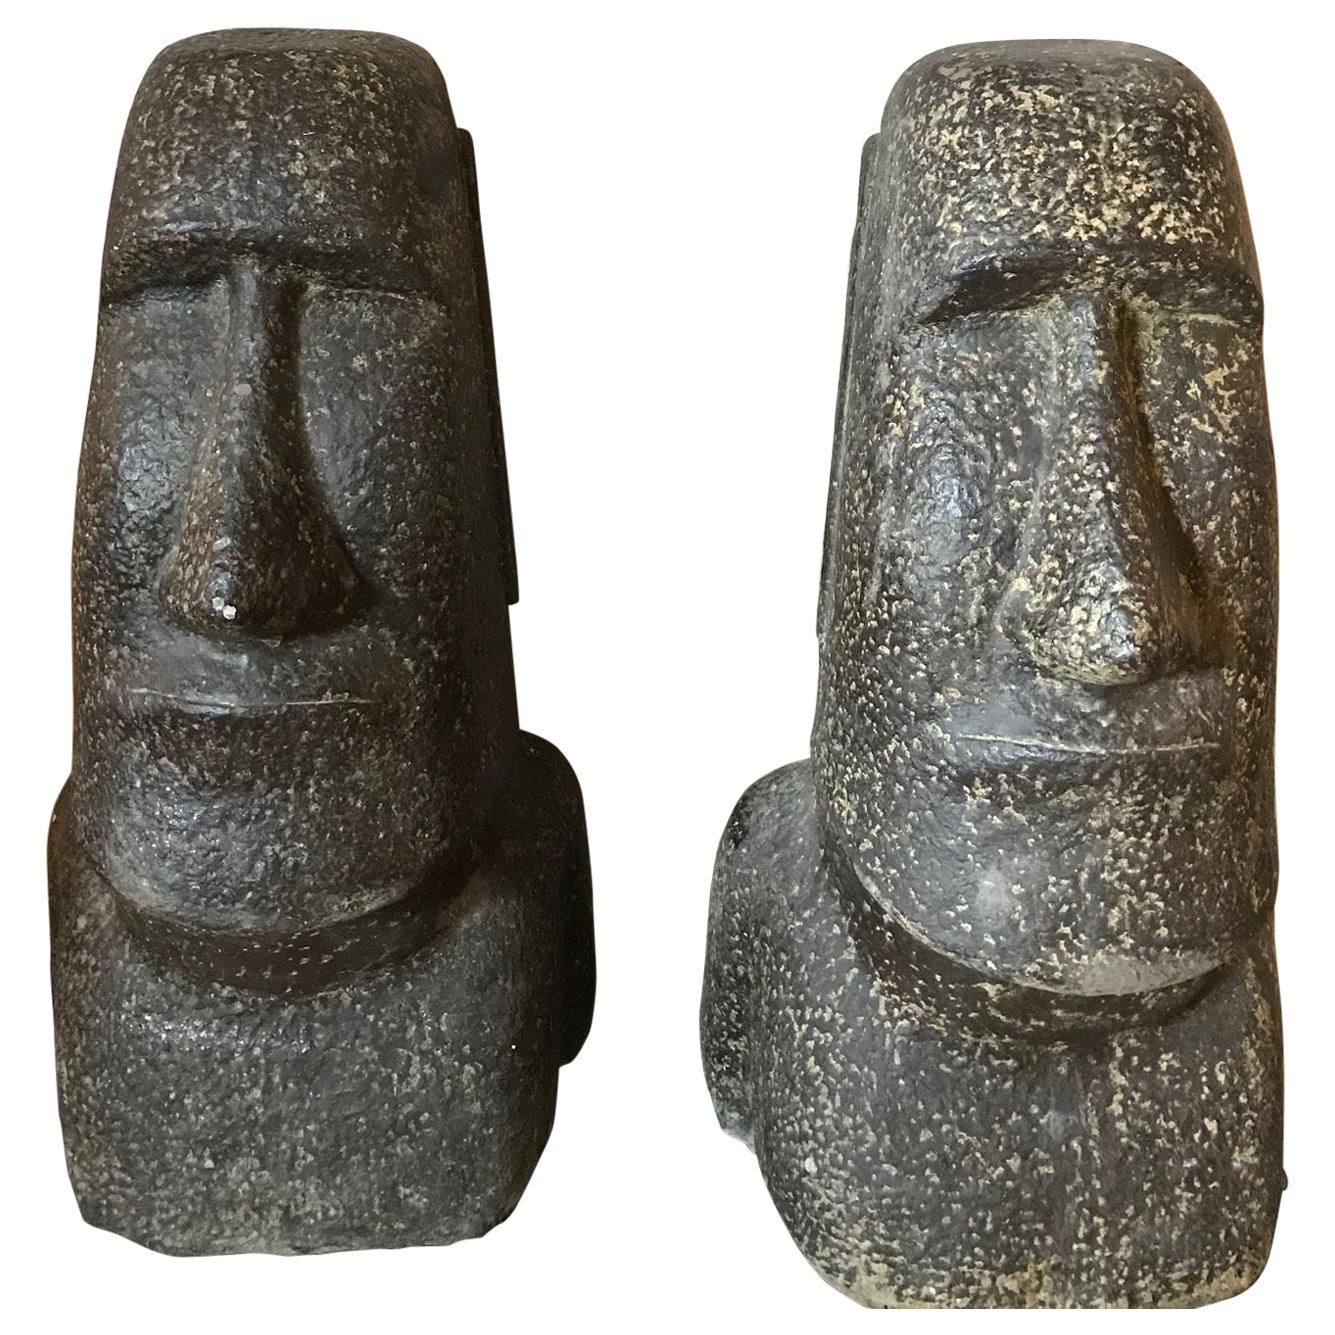 Concrete Garden Statues in the form of Easter Island Stone Statues